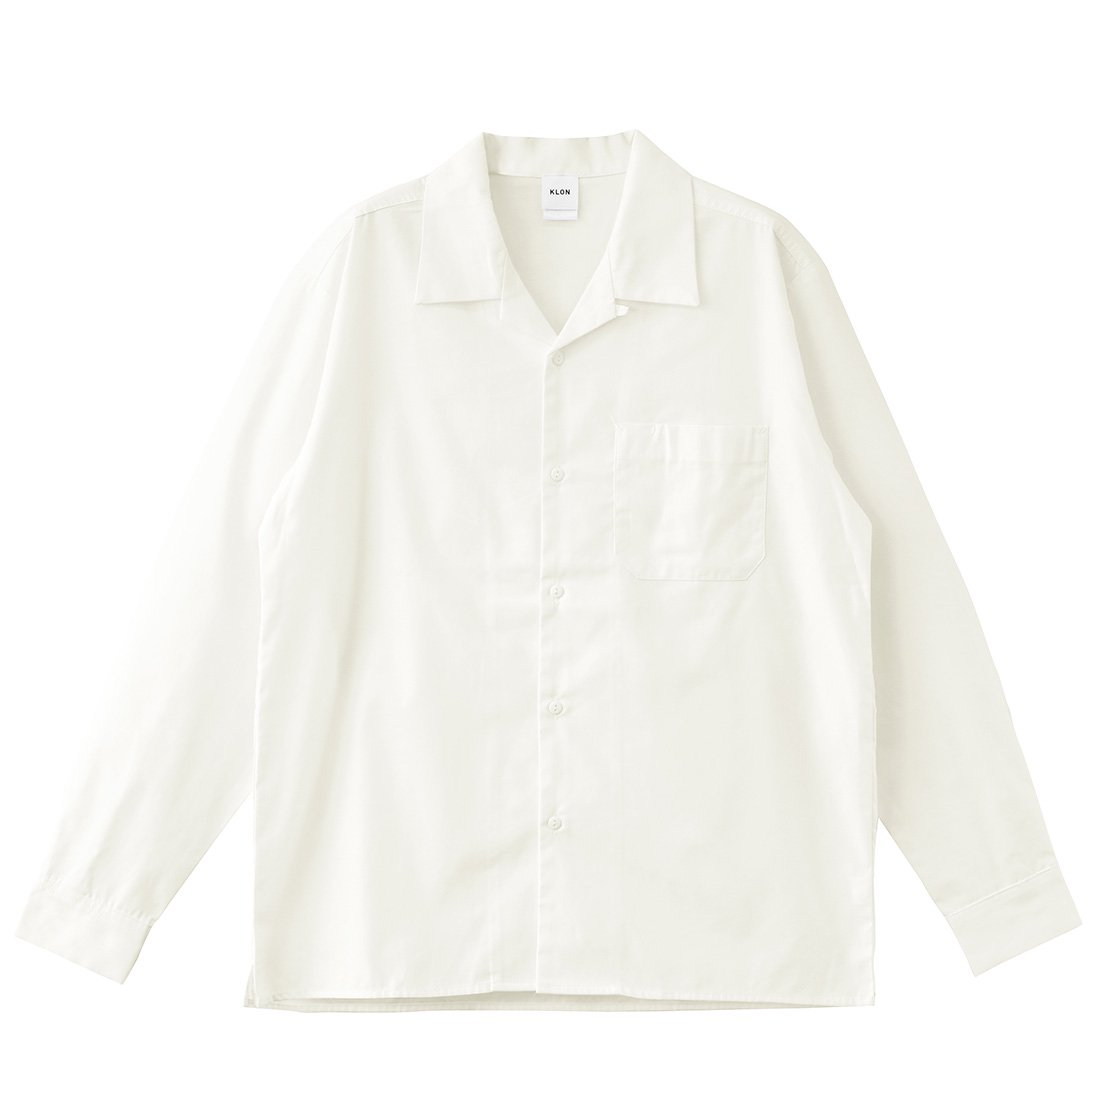 KLON WORX OPEN COLLAR SHIRTS WHITE